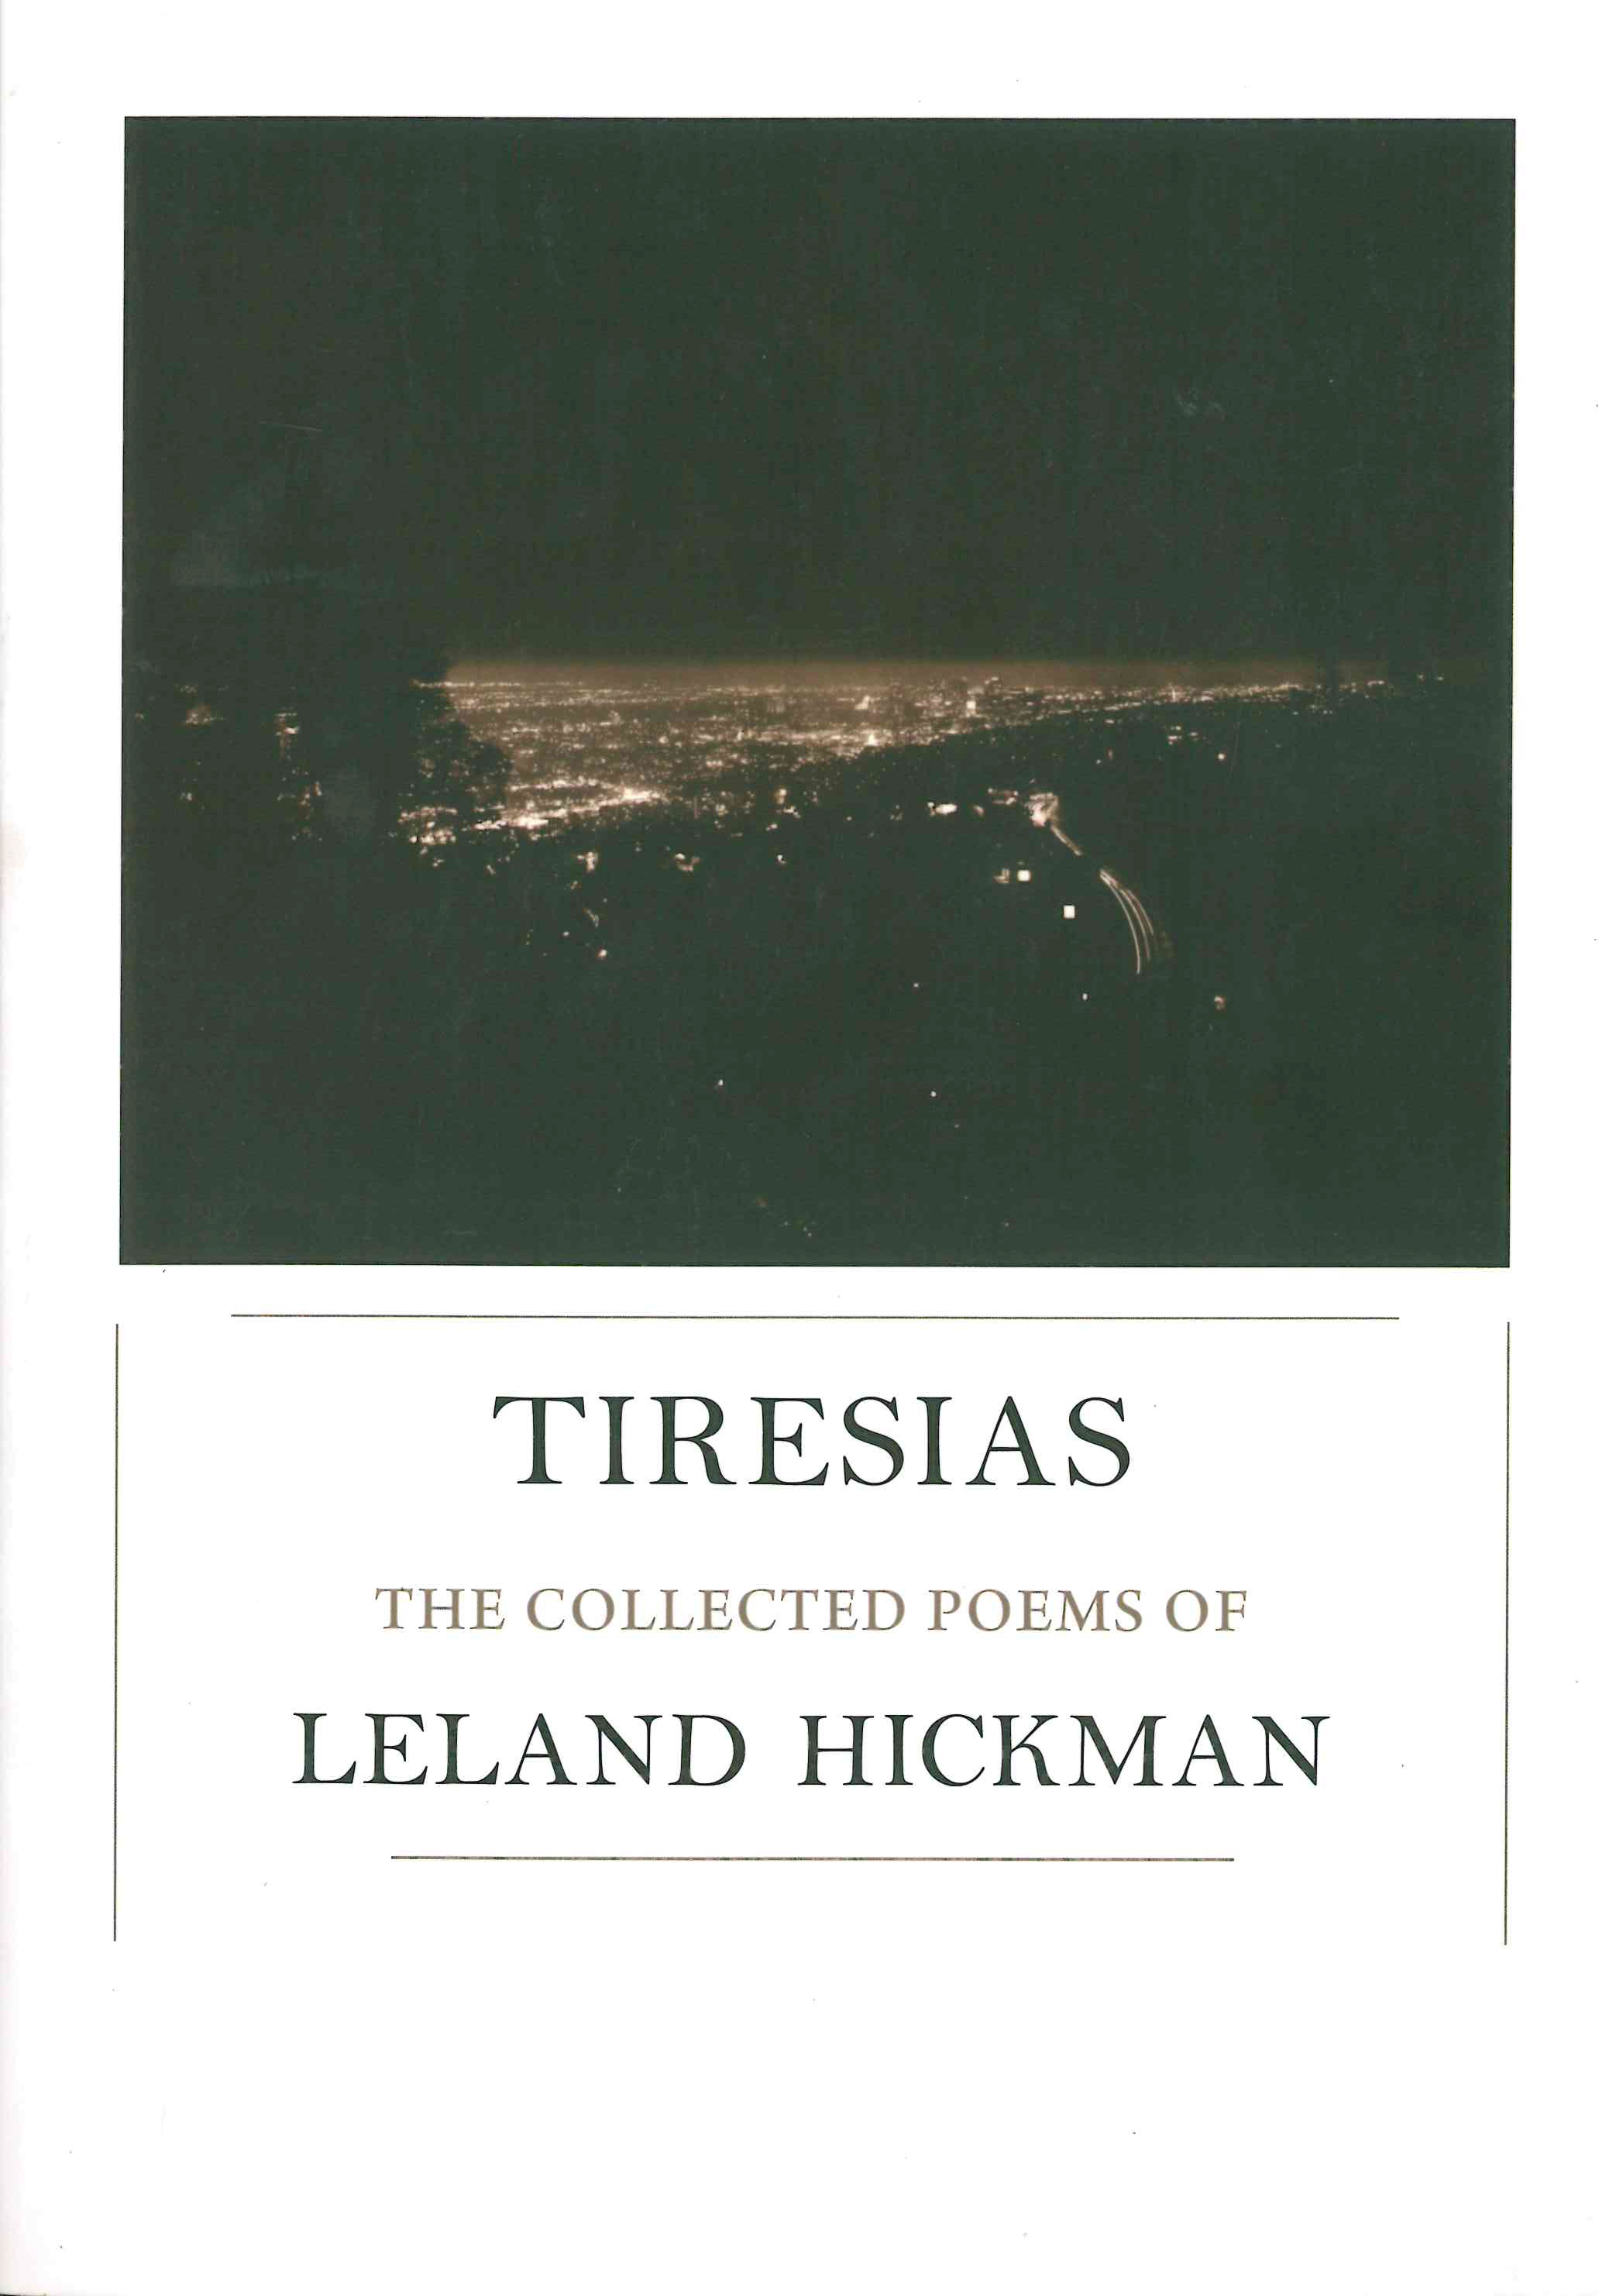 Tiresias: The Collected Poems of Leland Hickman